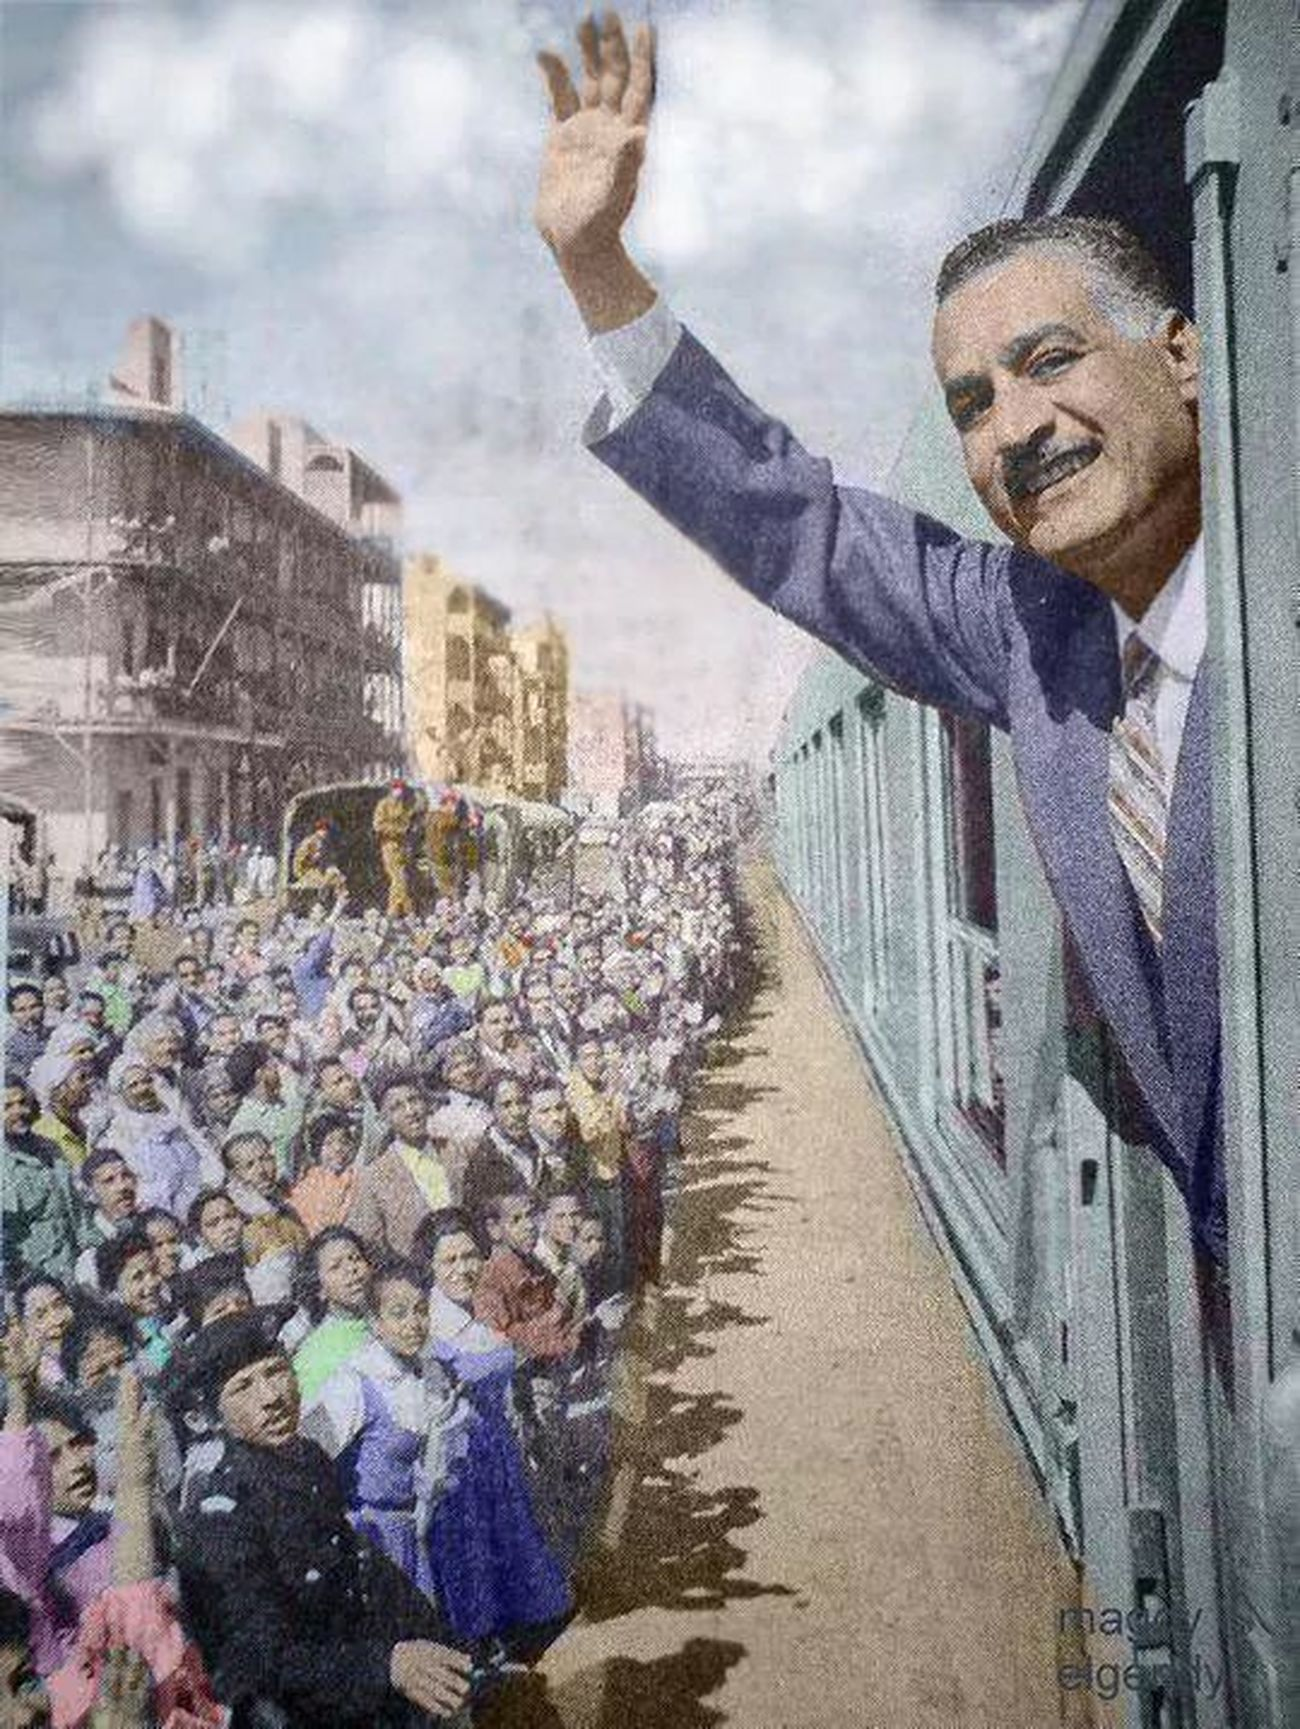 In CairoPictures of the late President Gamal Abdel Nasser, President of the Arab Republic of Egypt